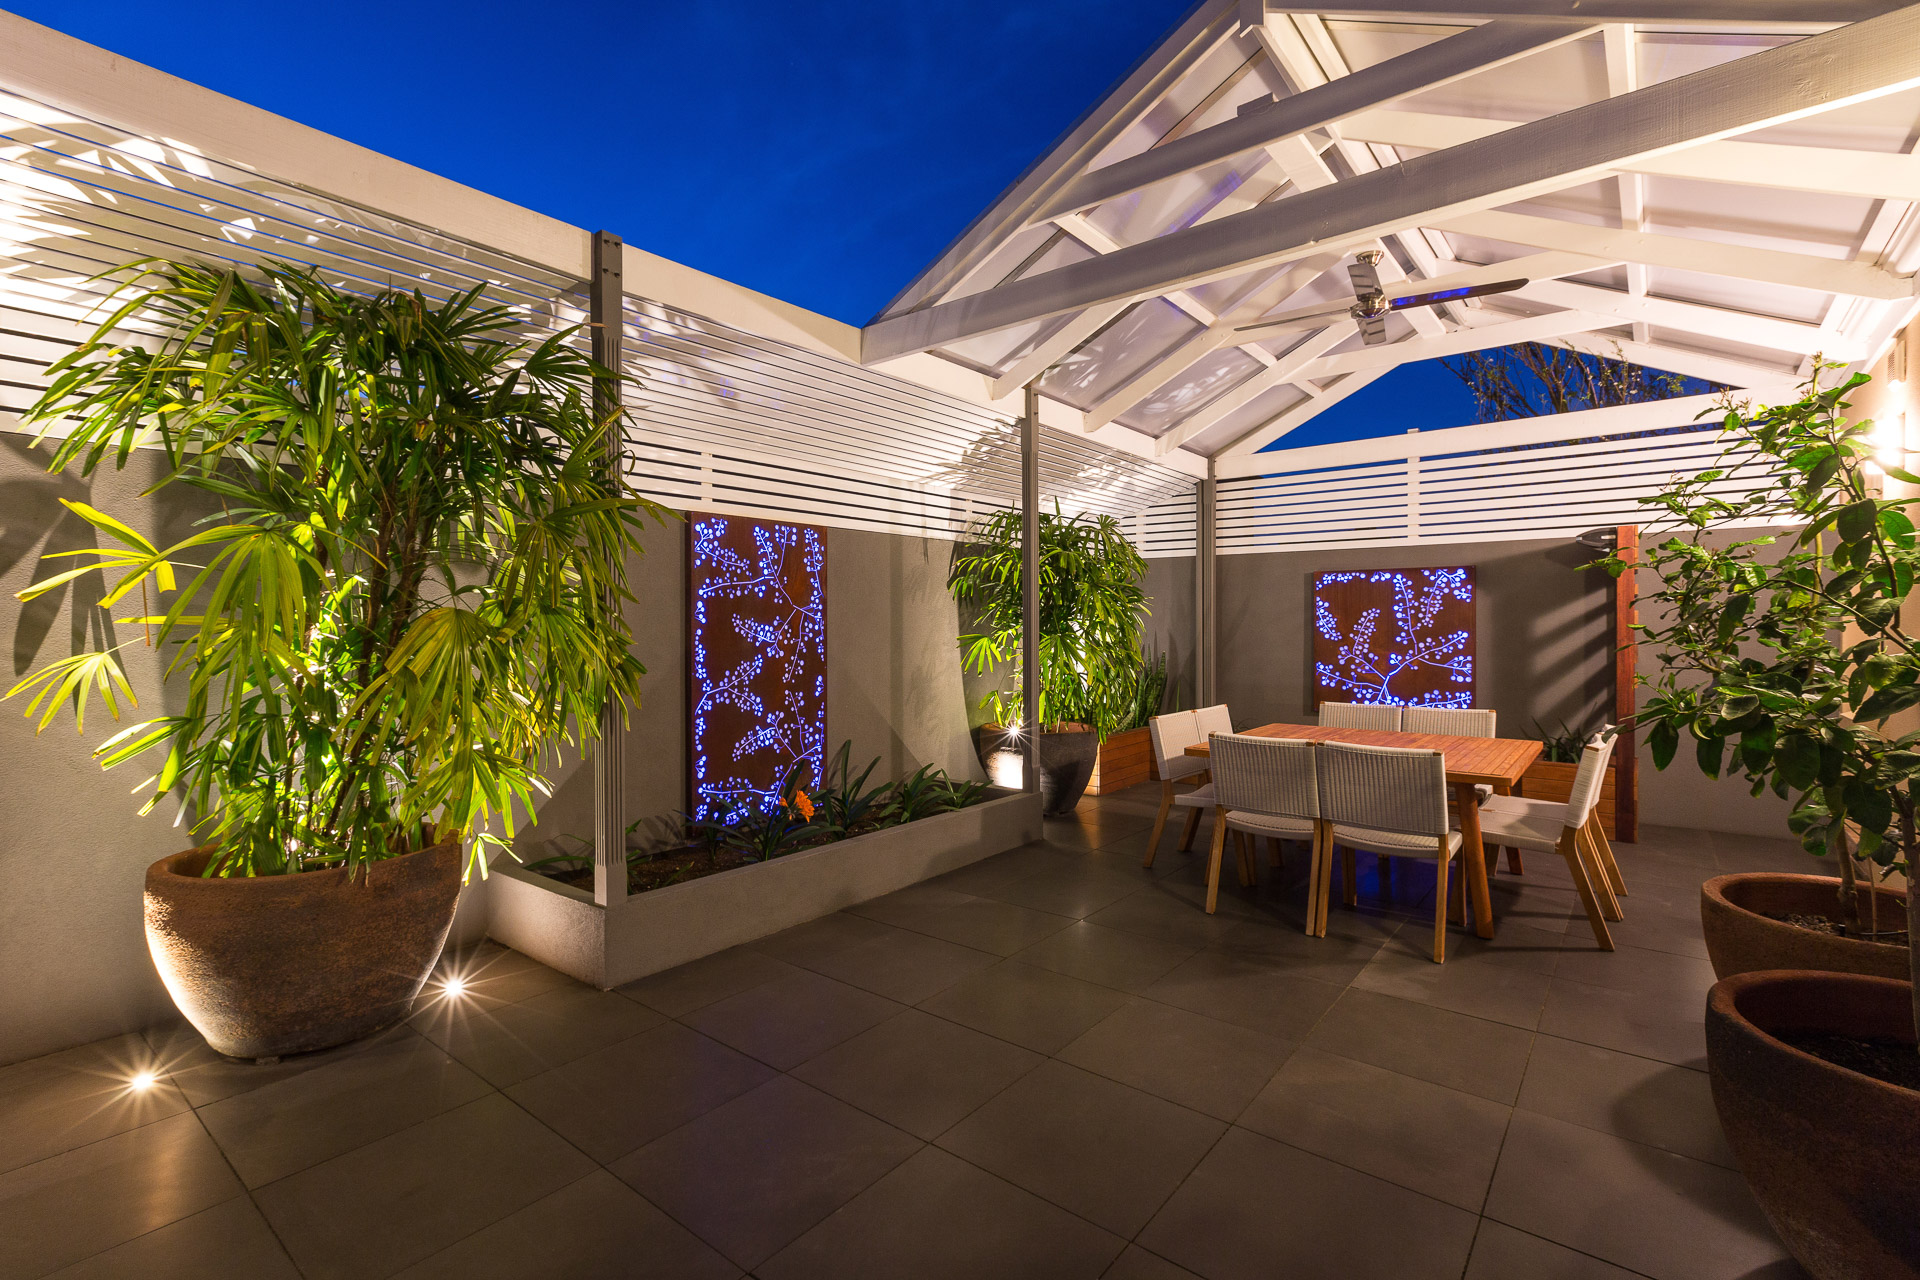 Gallery testimonials sa outdoor lighting lux wall lights lux spot lights and rgb strip lighting illumating outdor area and backlit screen aloadofball Image collections